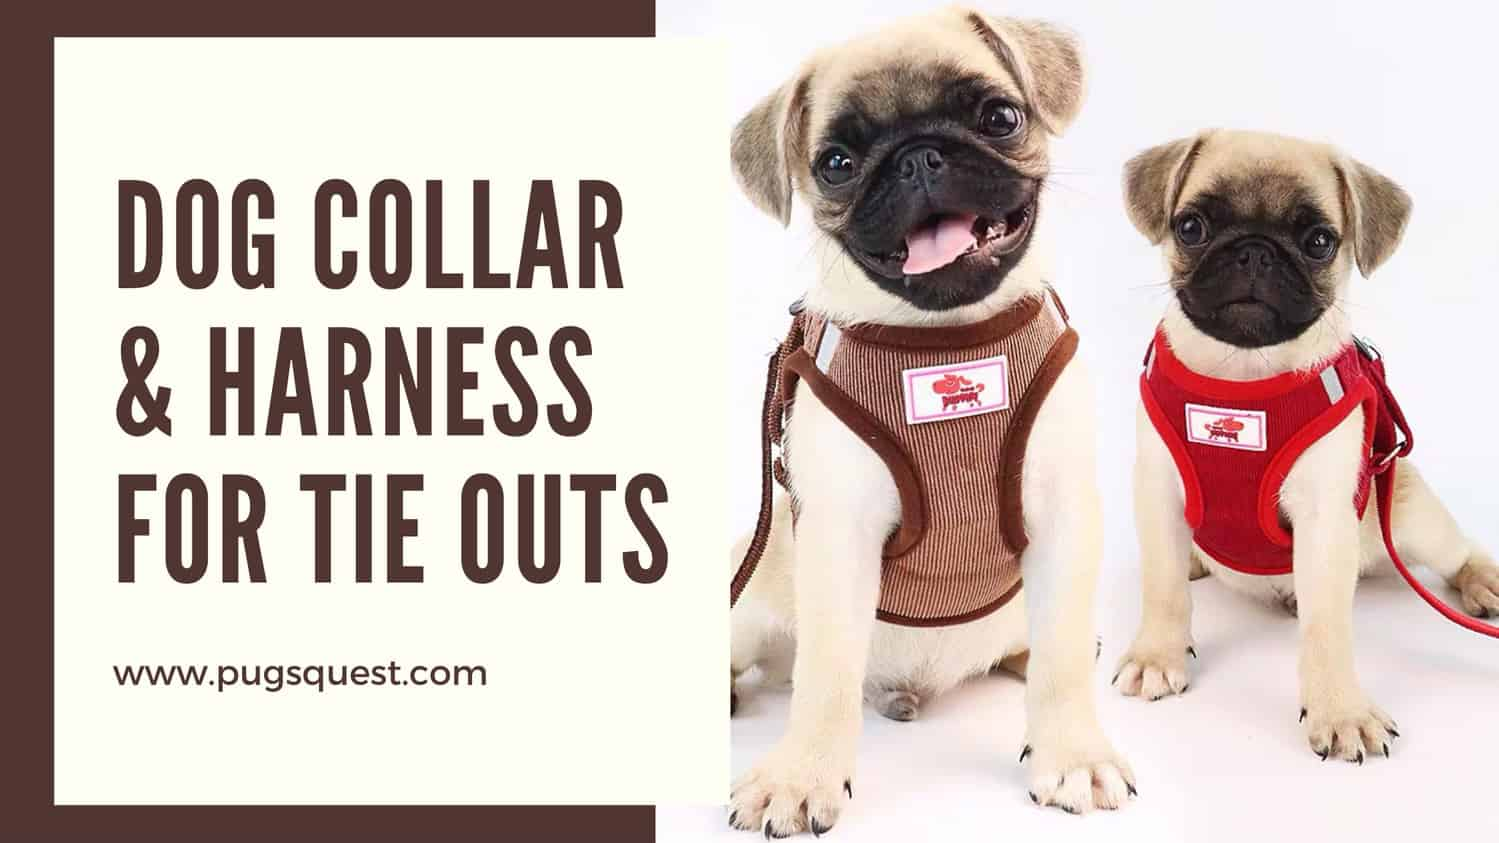 dog collar & harness for tie outs